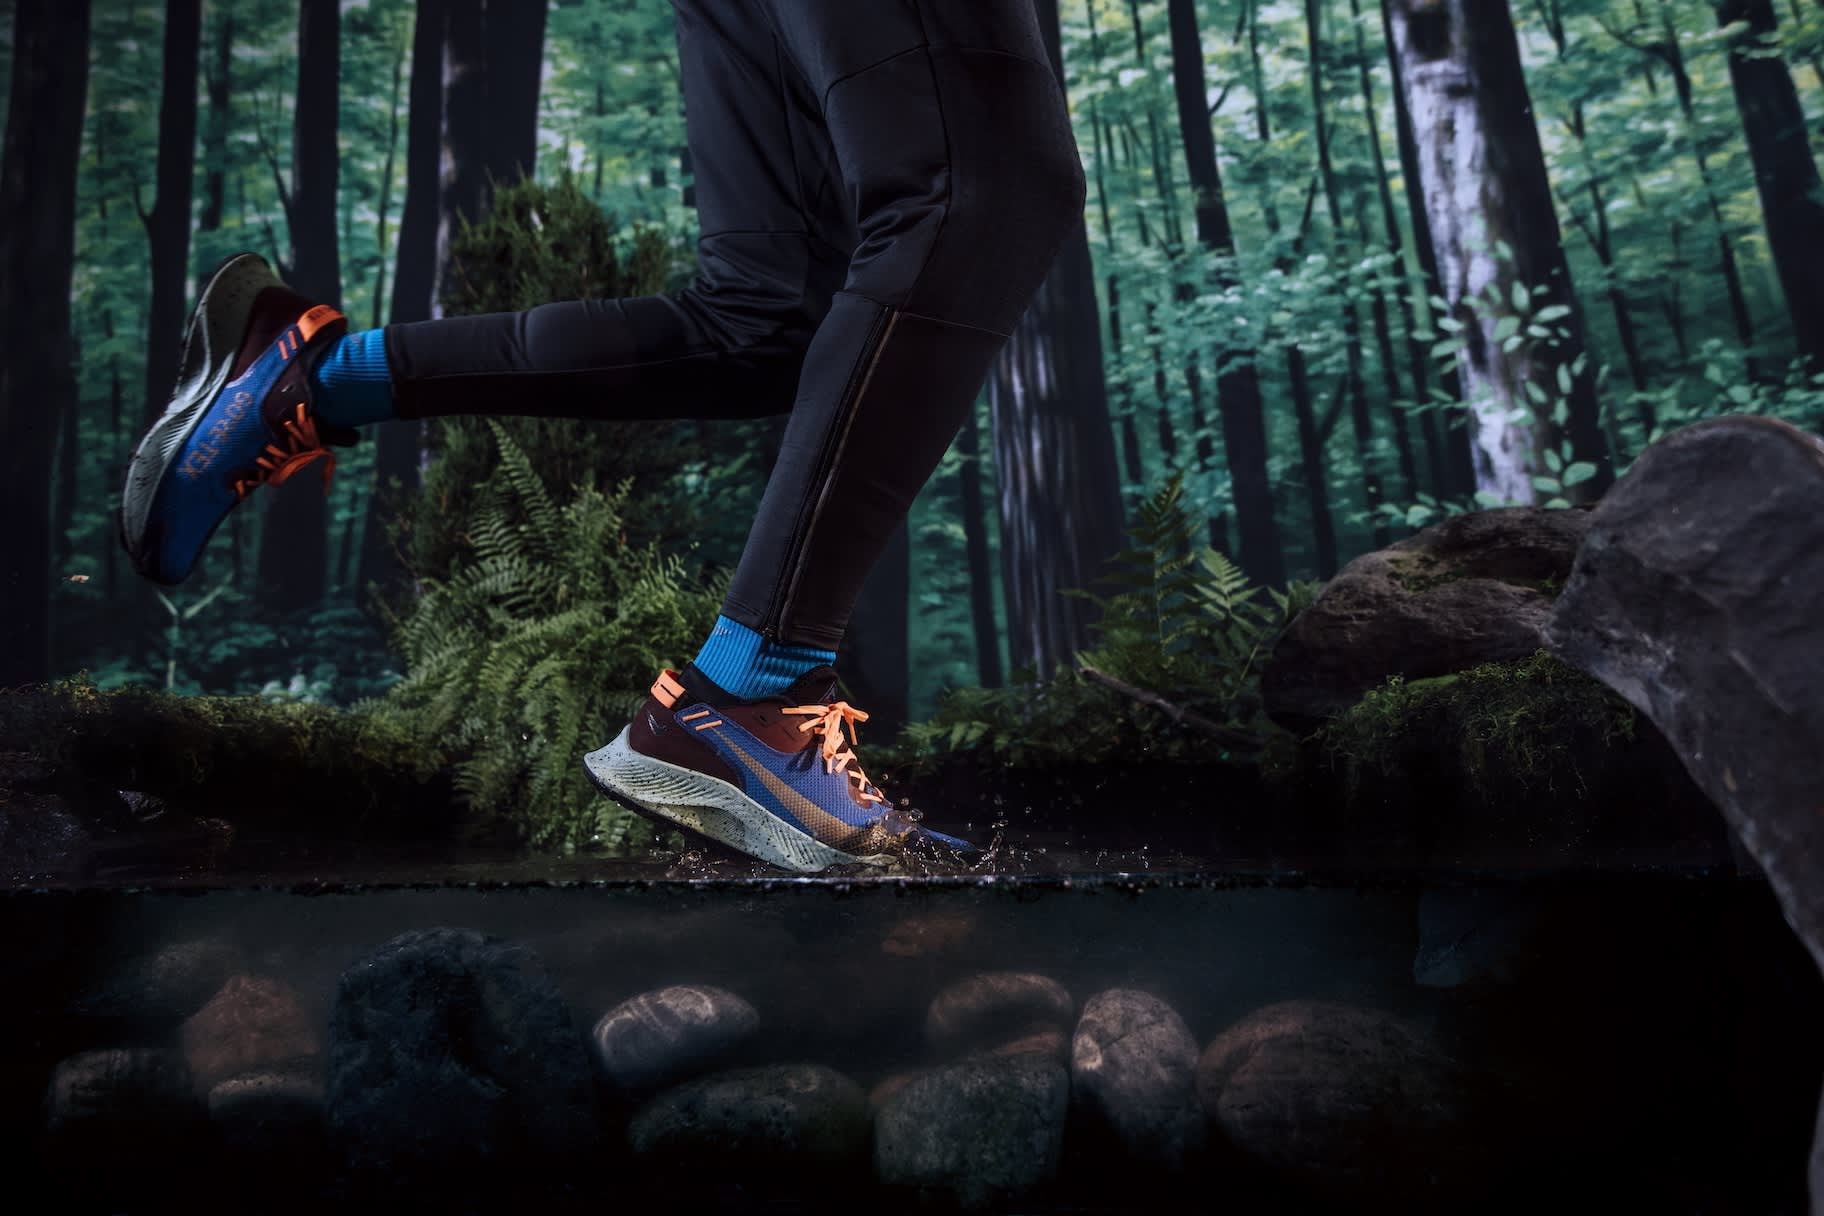 Everything You Need to Get Started Trail Running